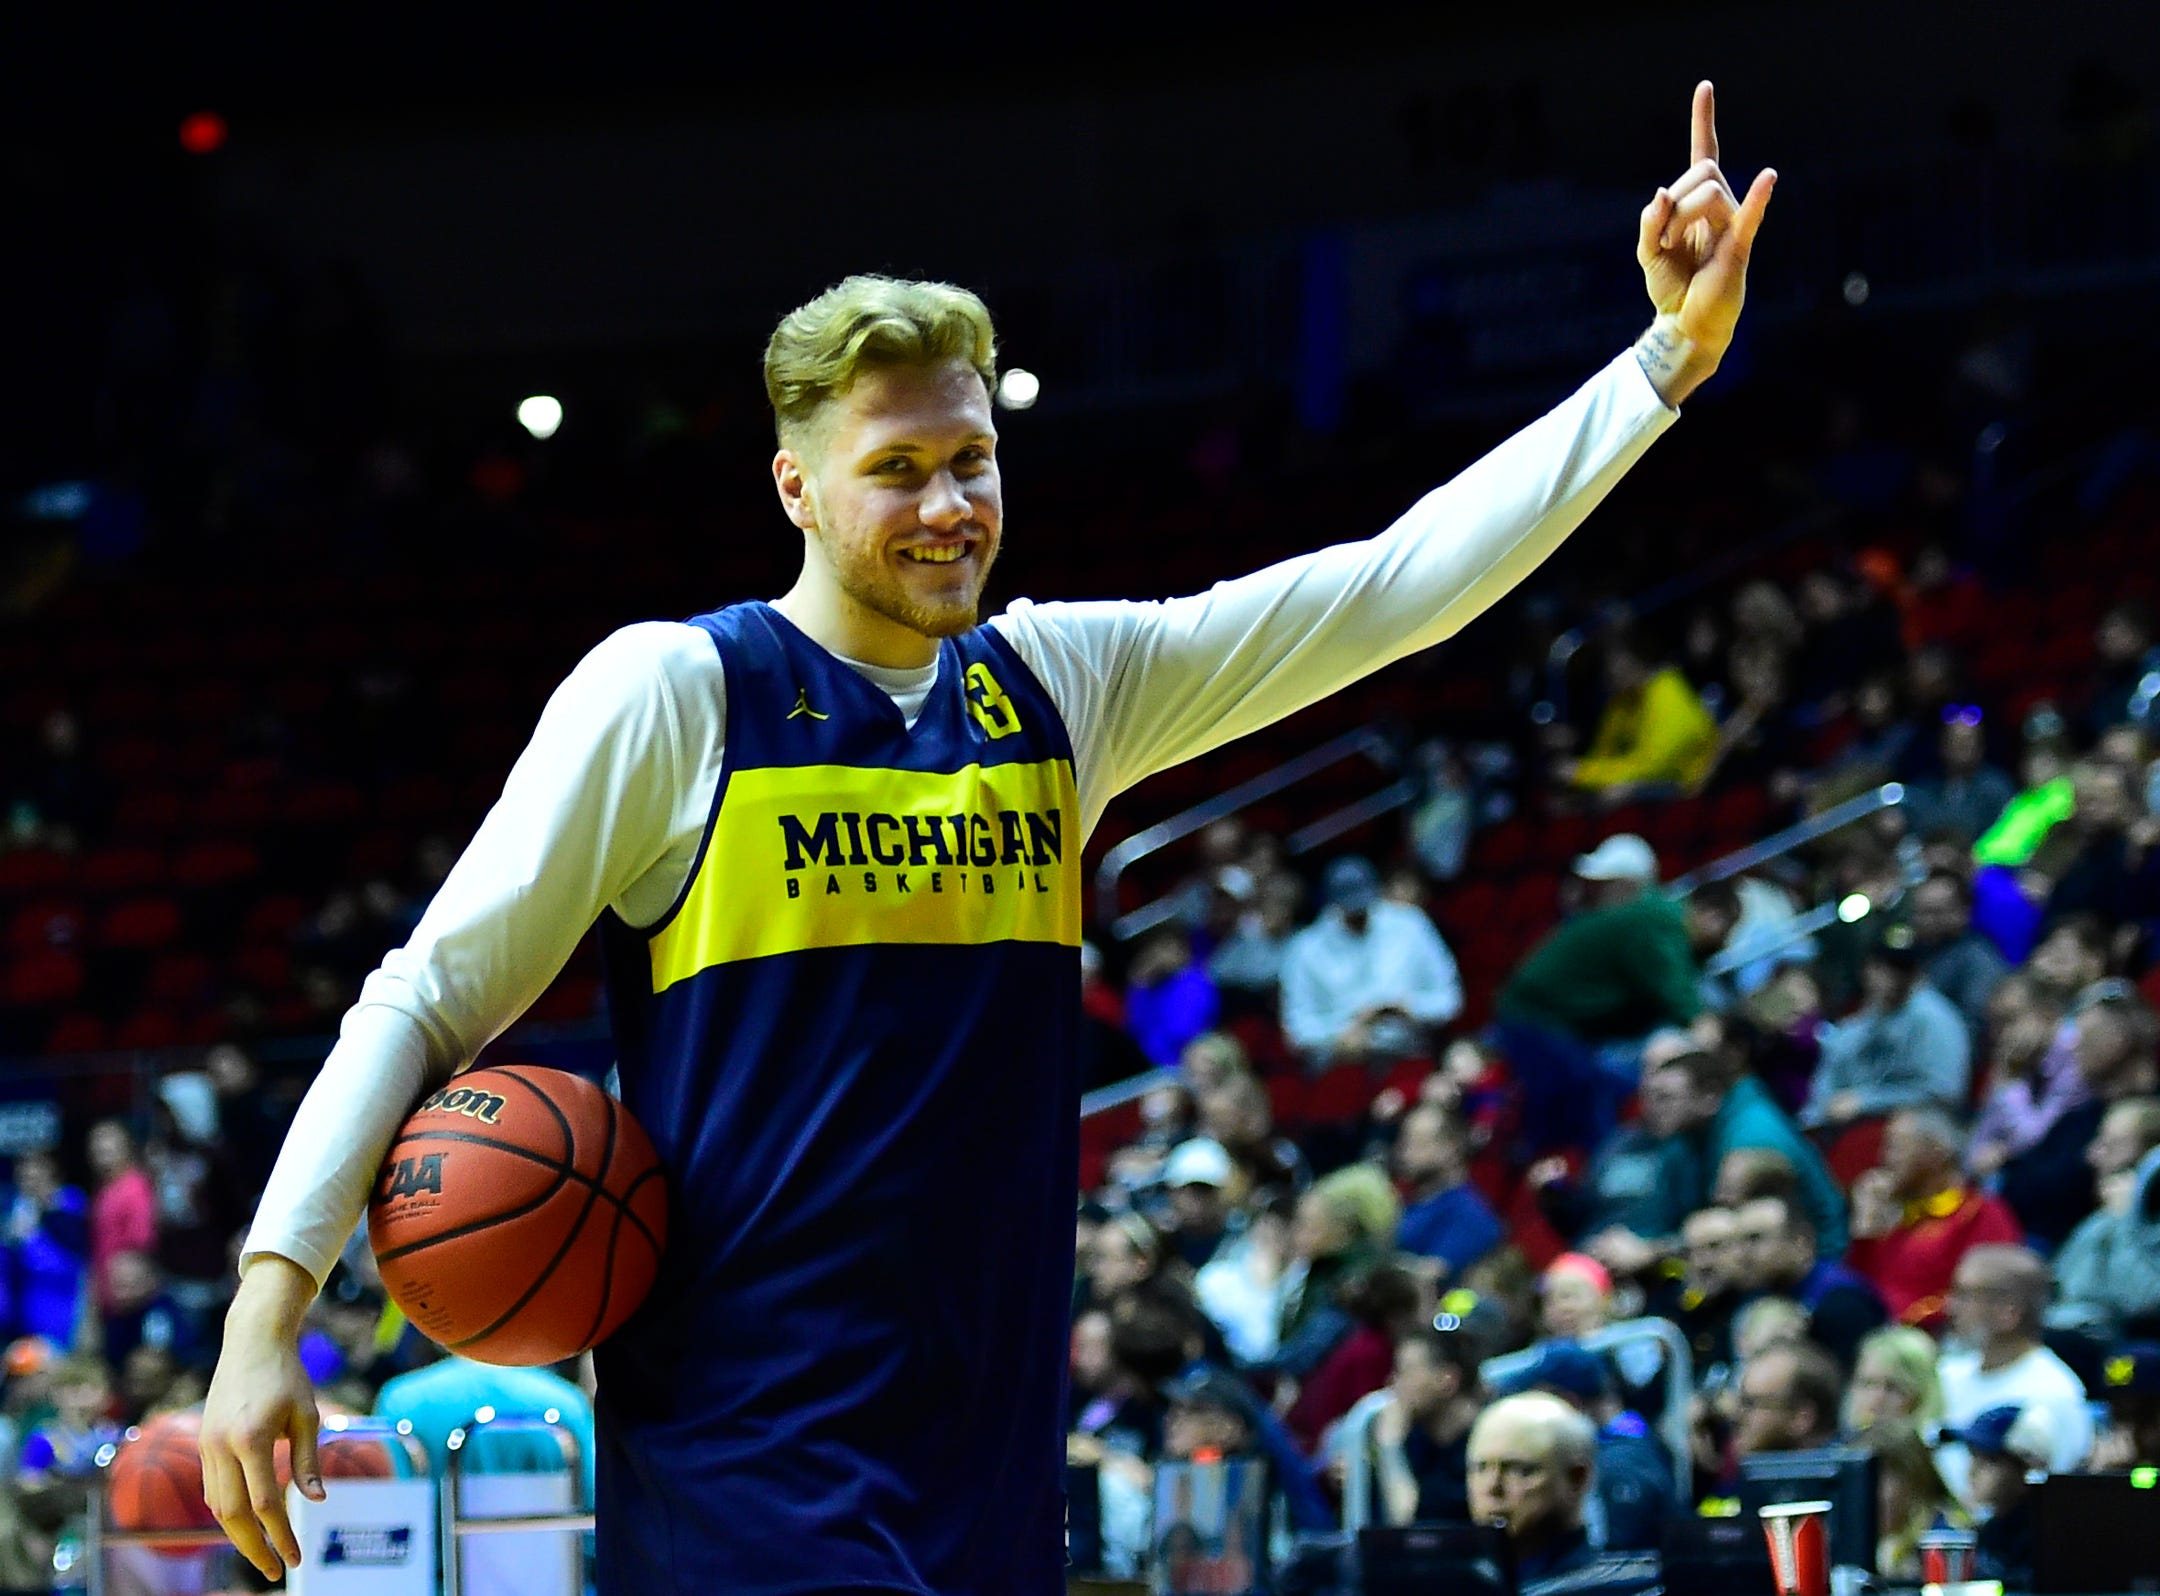 Mar 20, 2019; Des Moines, IA, USA; Michigan Wolverines forward Ignas Brazdeikis (13) during practice before the first round of the 2019 NCAA Tournament at Wells Fargo Arena. Mandatory Credit: Jeffrey Becker-USA TODAY Sports